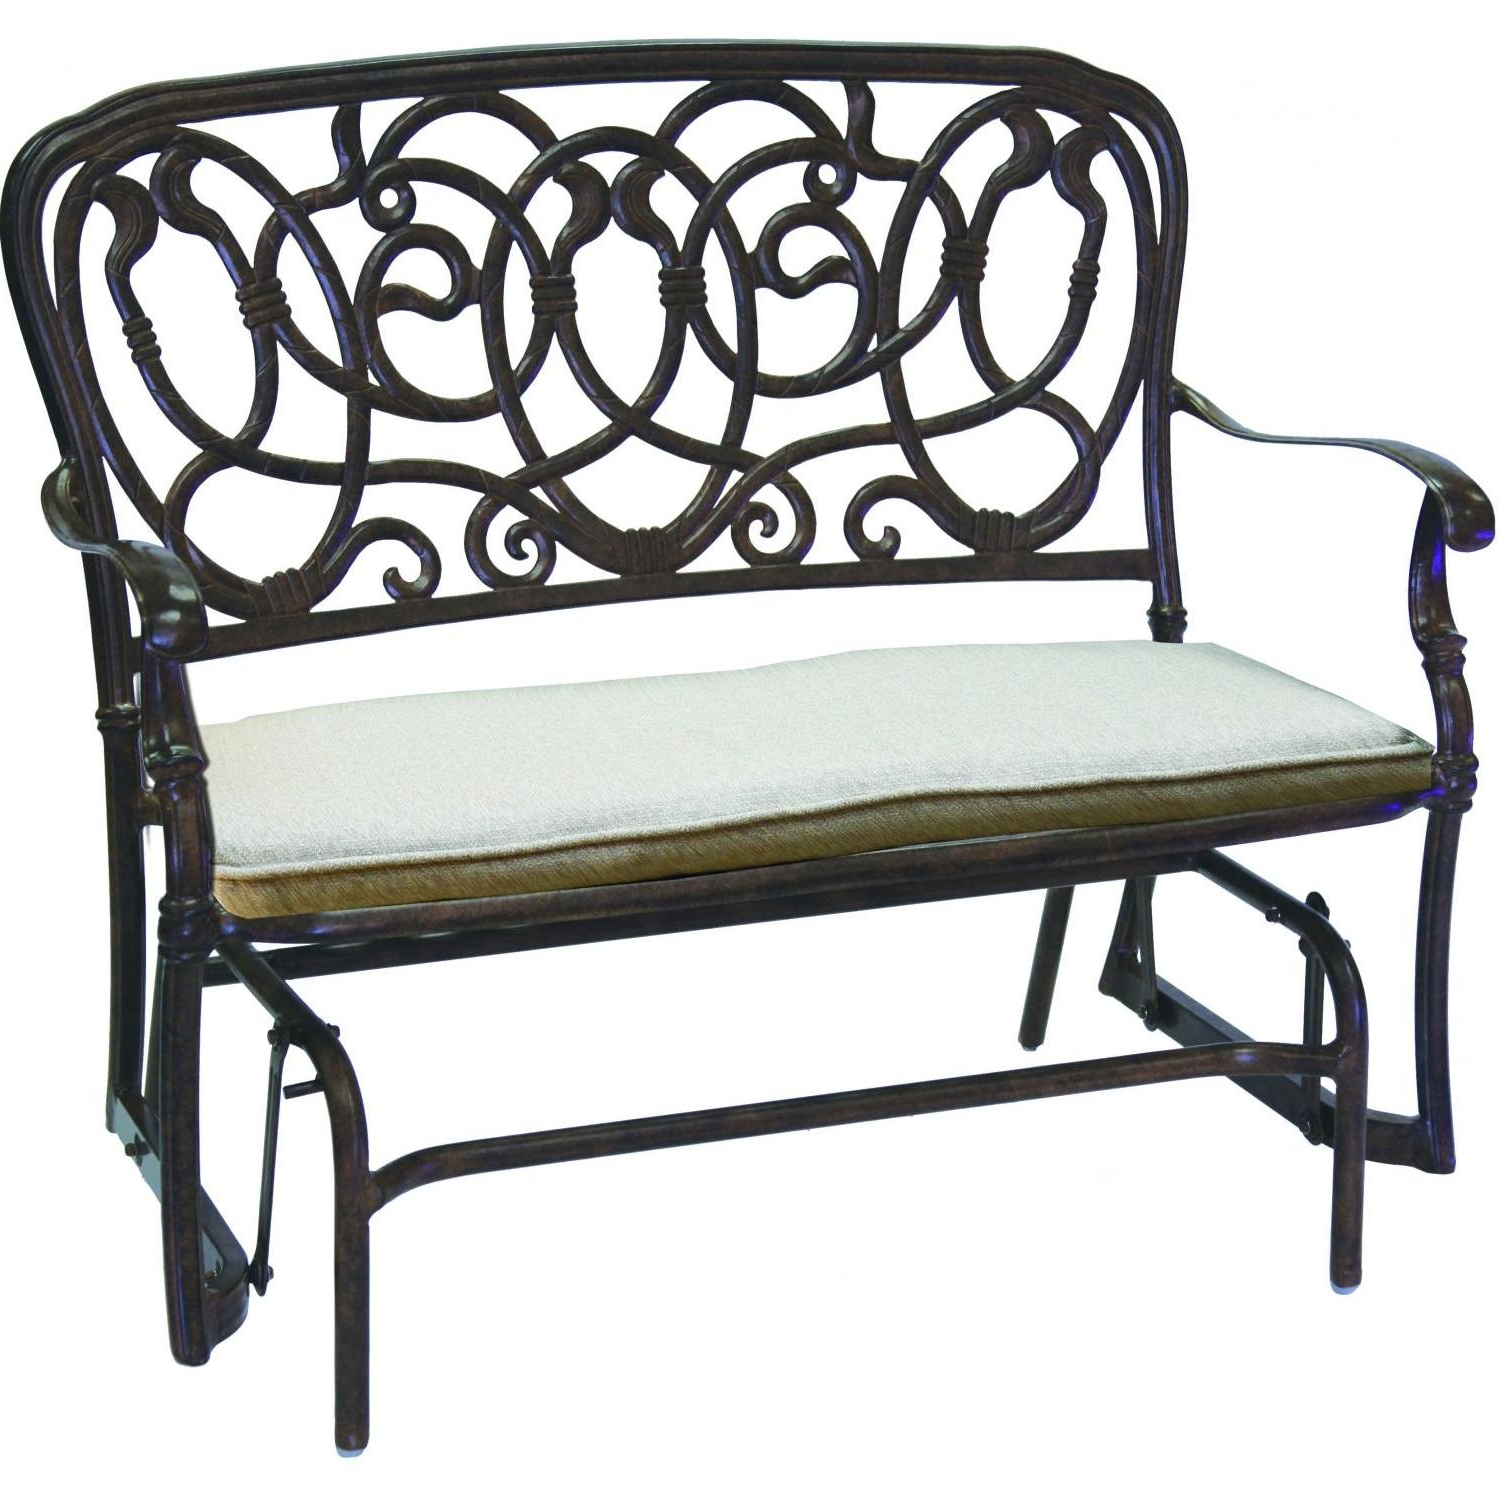 Darlee Florence 2 Piece Cast Aluminum Patio Bench Glider Conversation  Seating Set – Antique Bronze Regarding Widely Used Aluminum Glider Benches With Cushion (View 13 of 30)